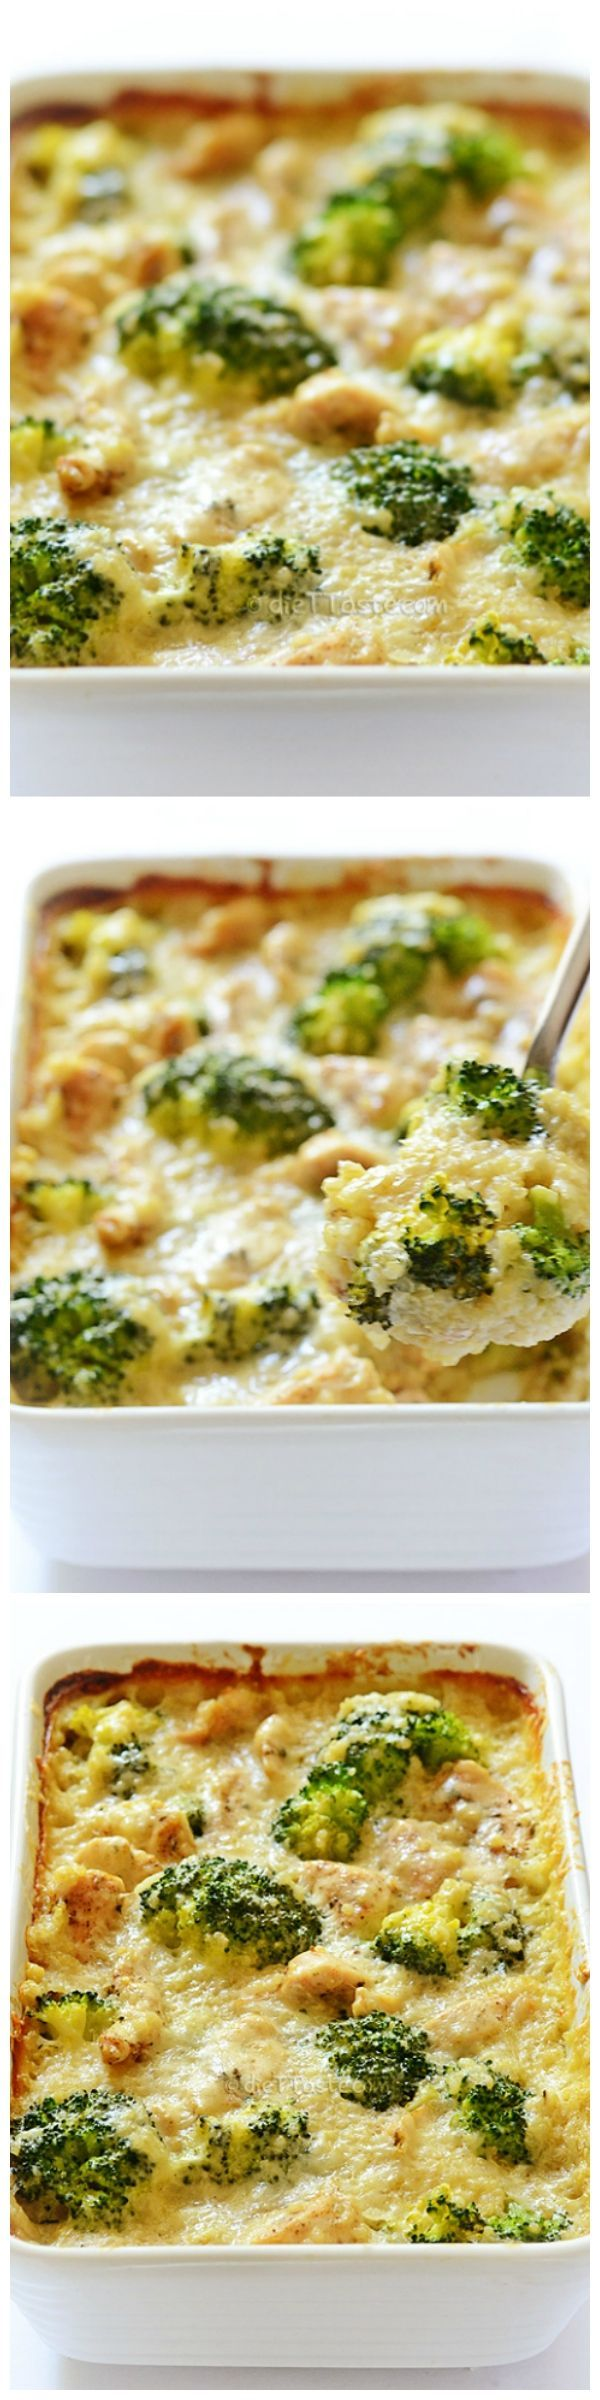 Chicken, Quinoa and Broccoli Casserole: creamy sauce + seasoned chicken breast strips + healthy quinoa and broccoli + melting cheese topping = perfection!